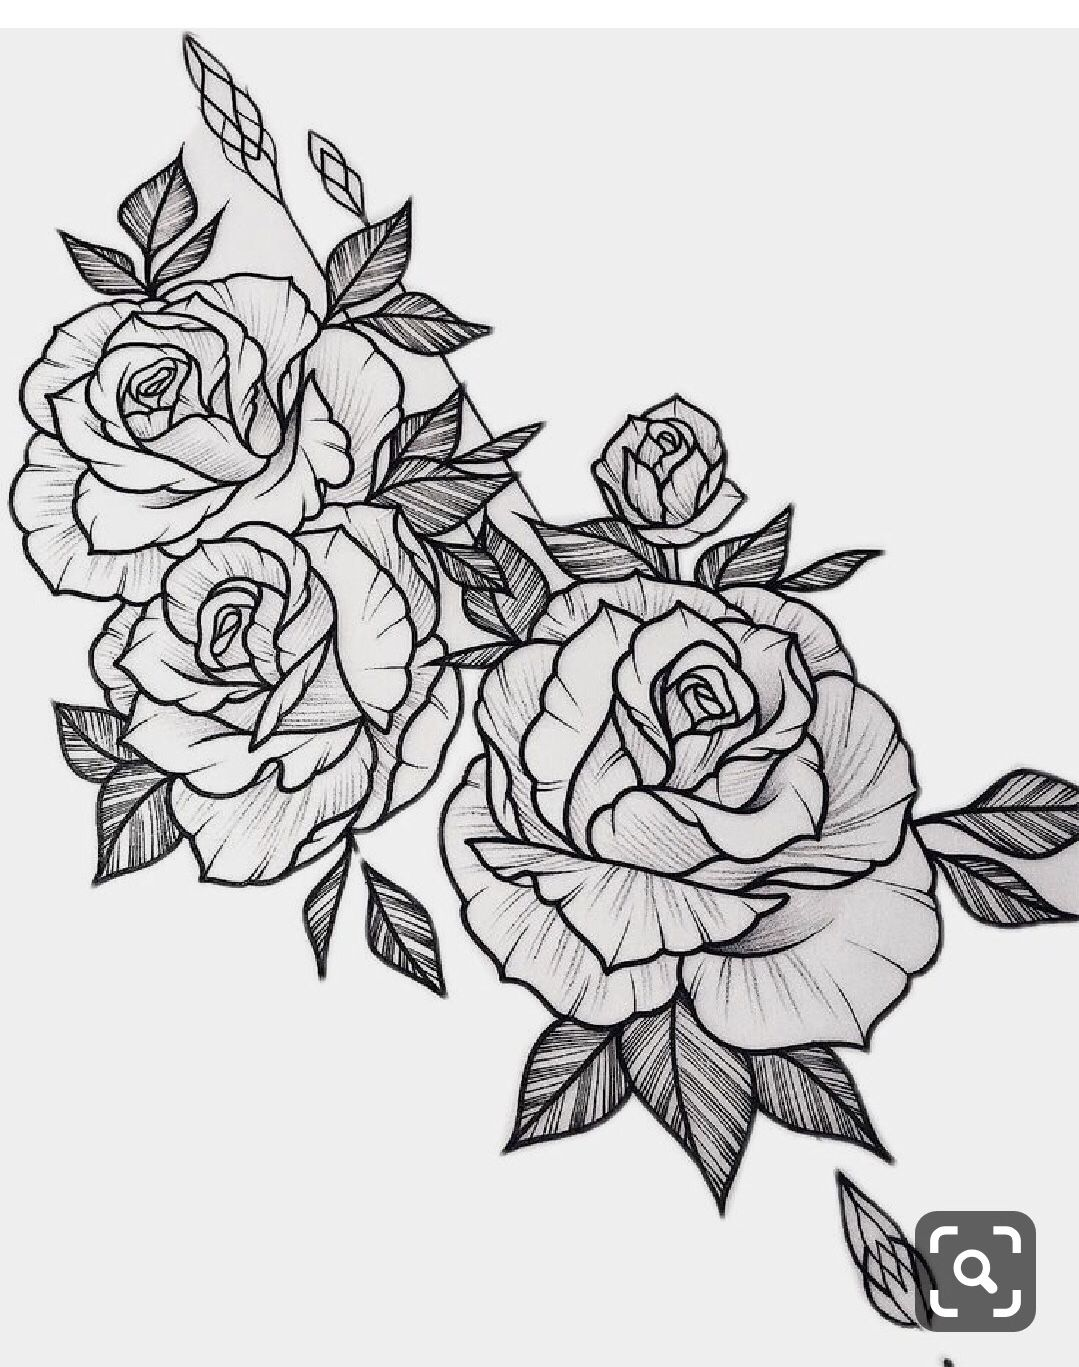 Pin By Mary Kinnard On Drawing Ideas Rose Tattoo Stencil Rose Outline Tattoo Flower Outline Tattoo